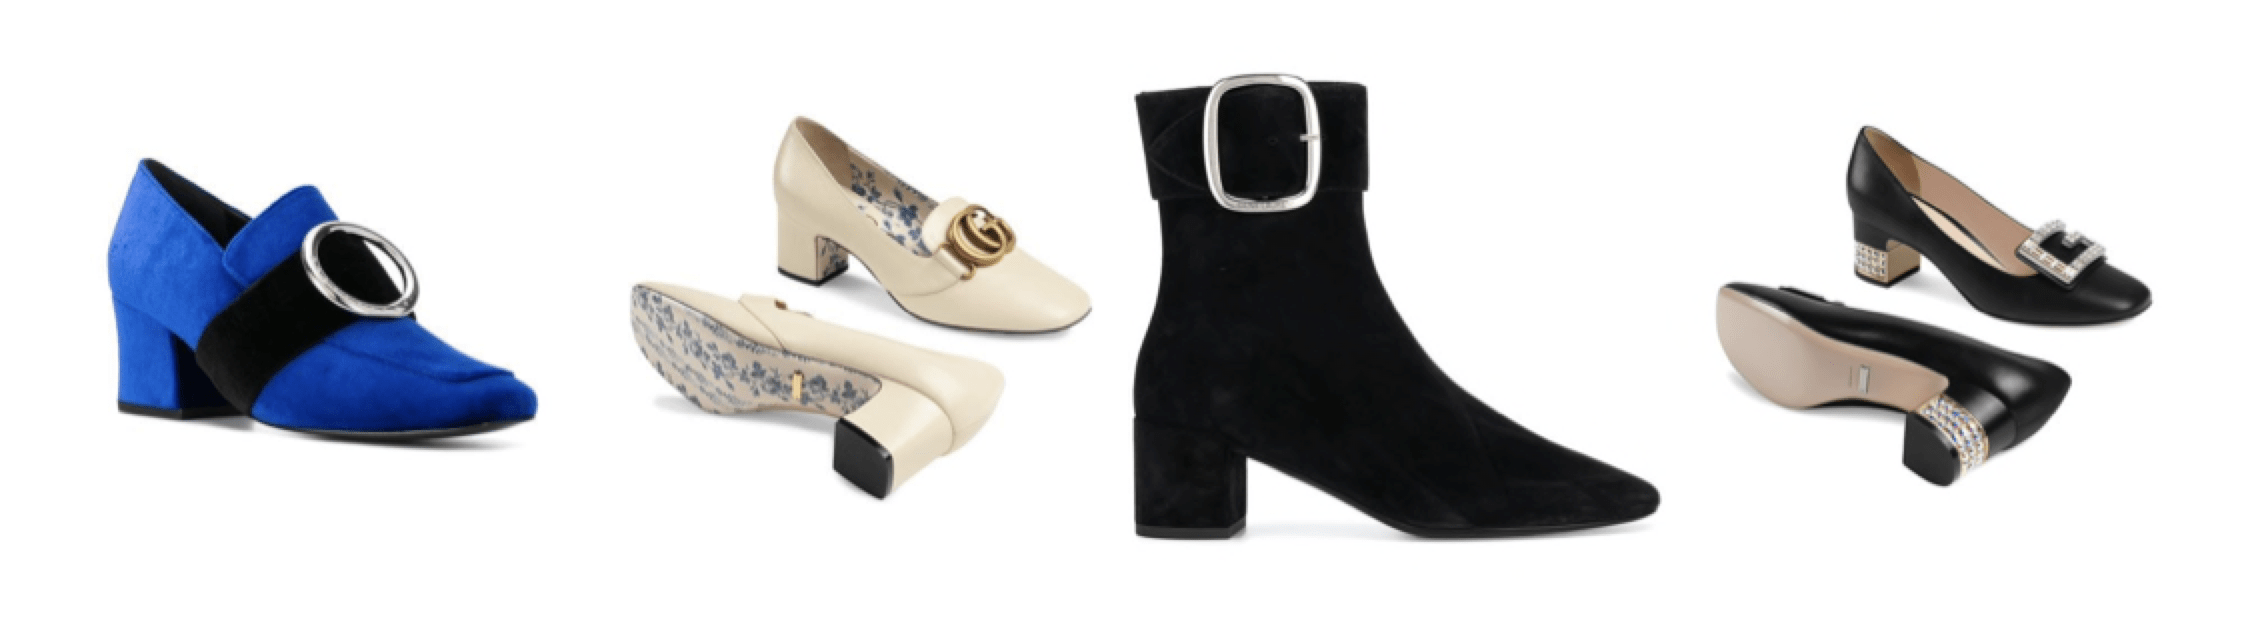 Images courtesy of Farfetch